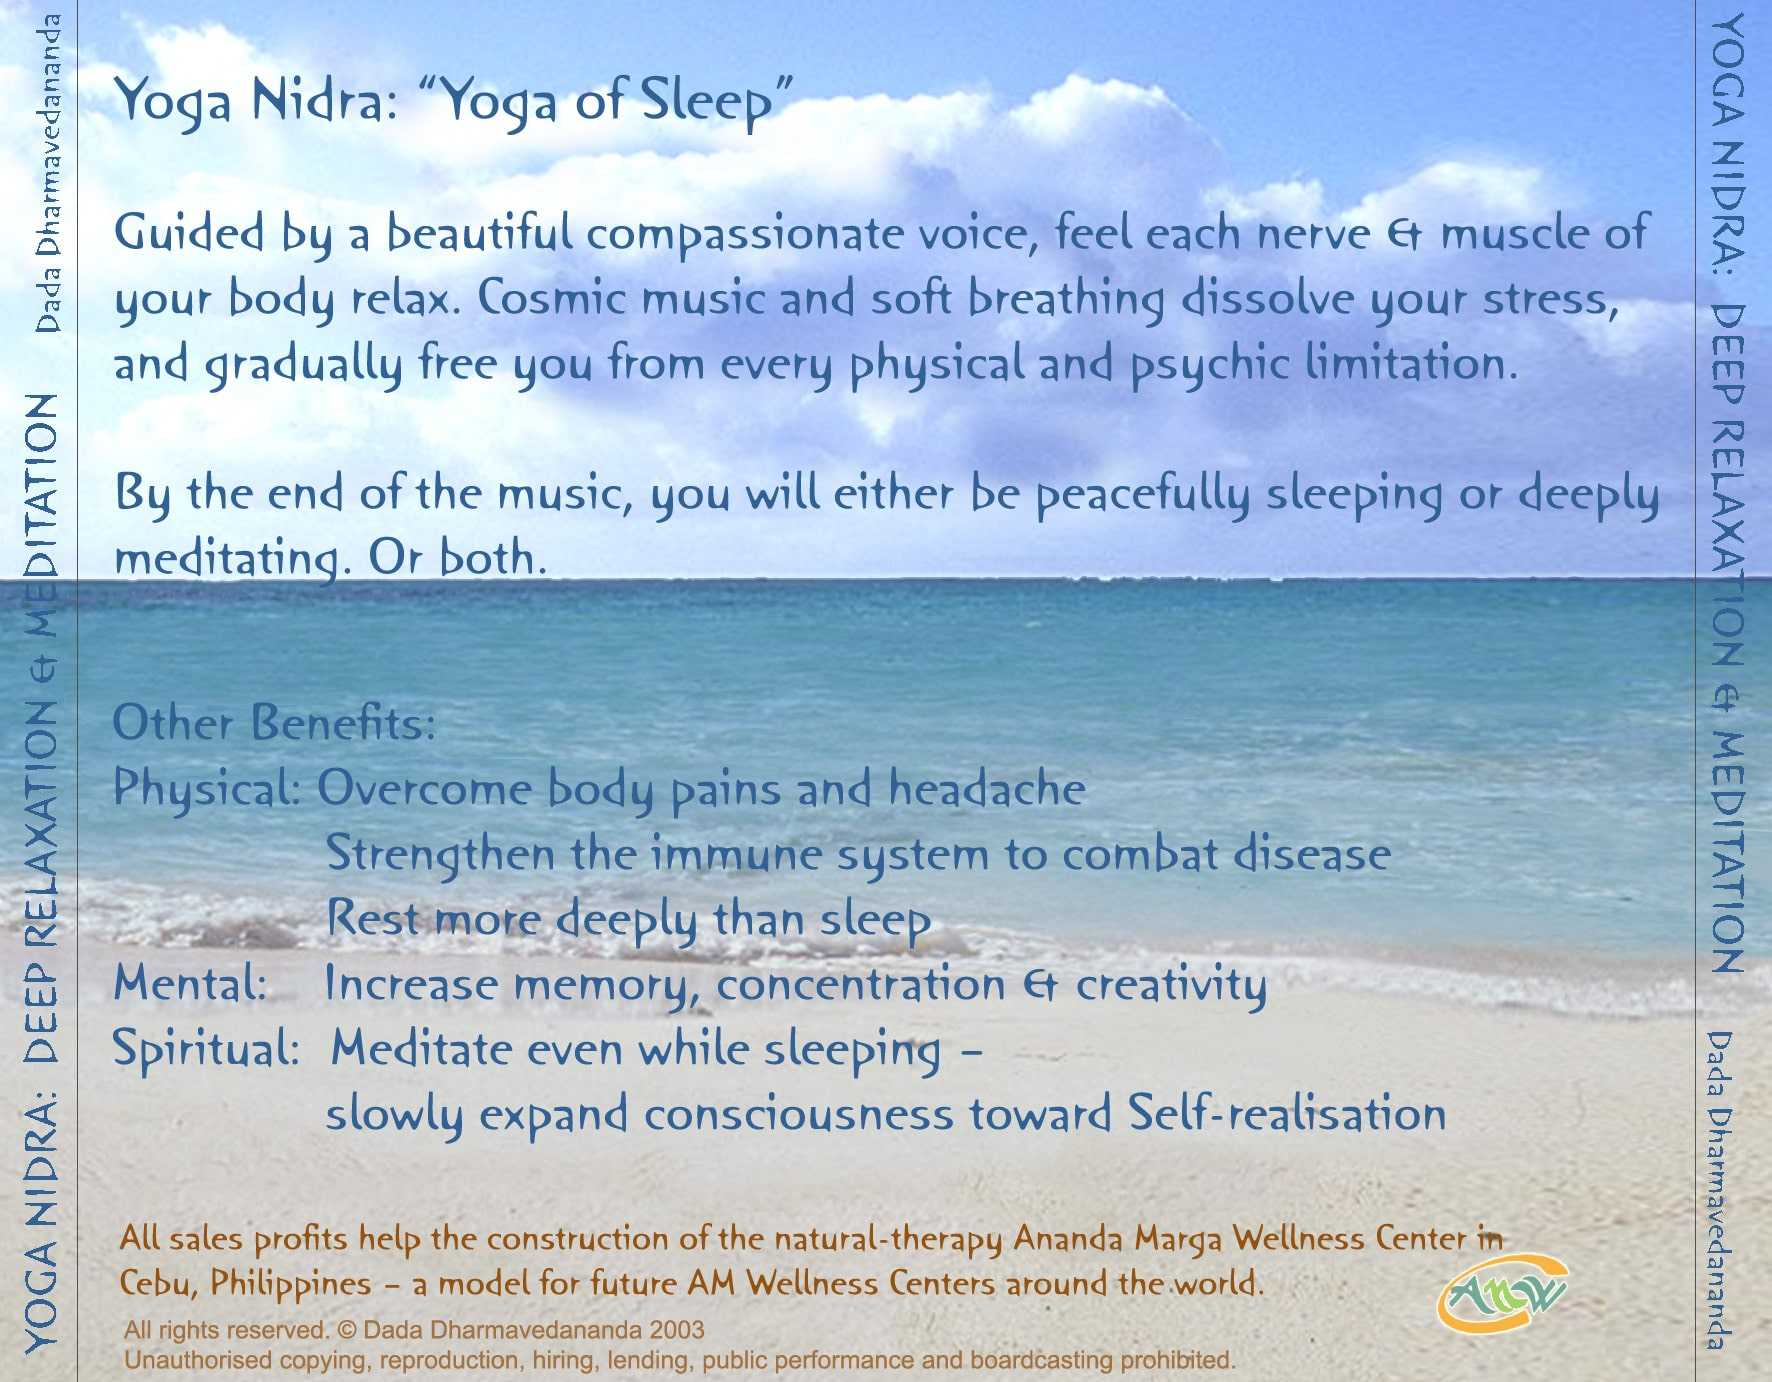 What is Yoga Nidra & its benefits 2016